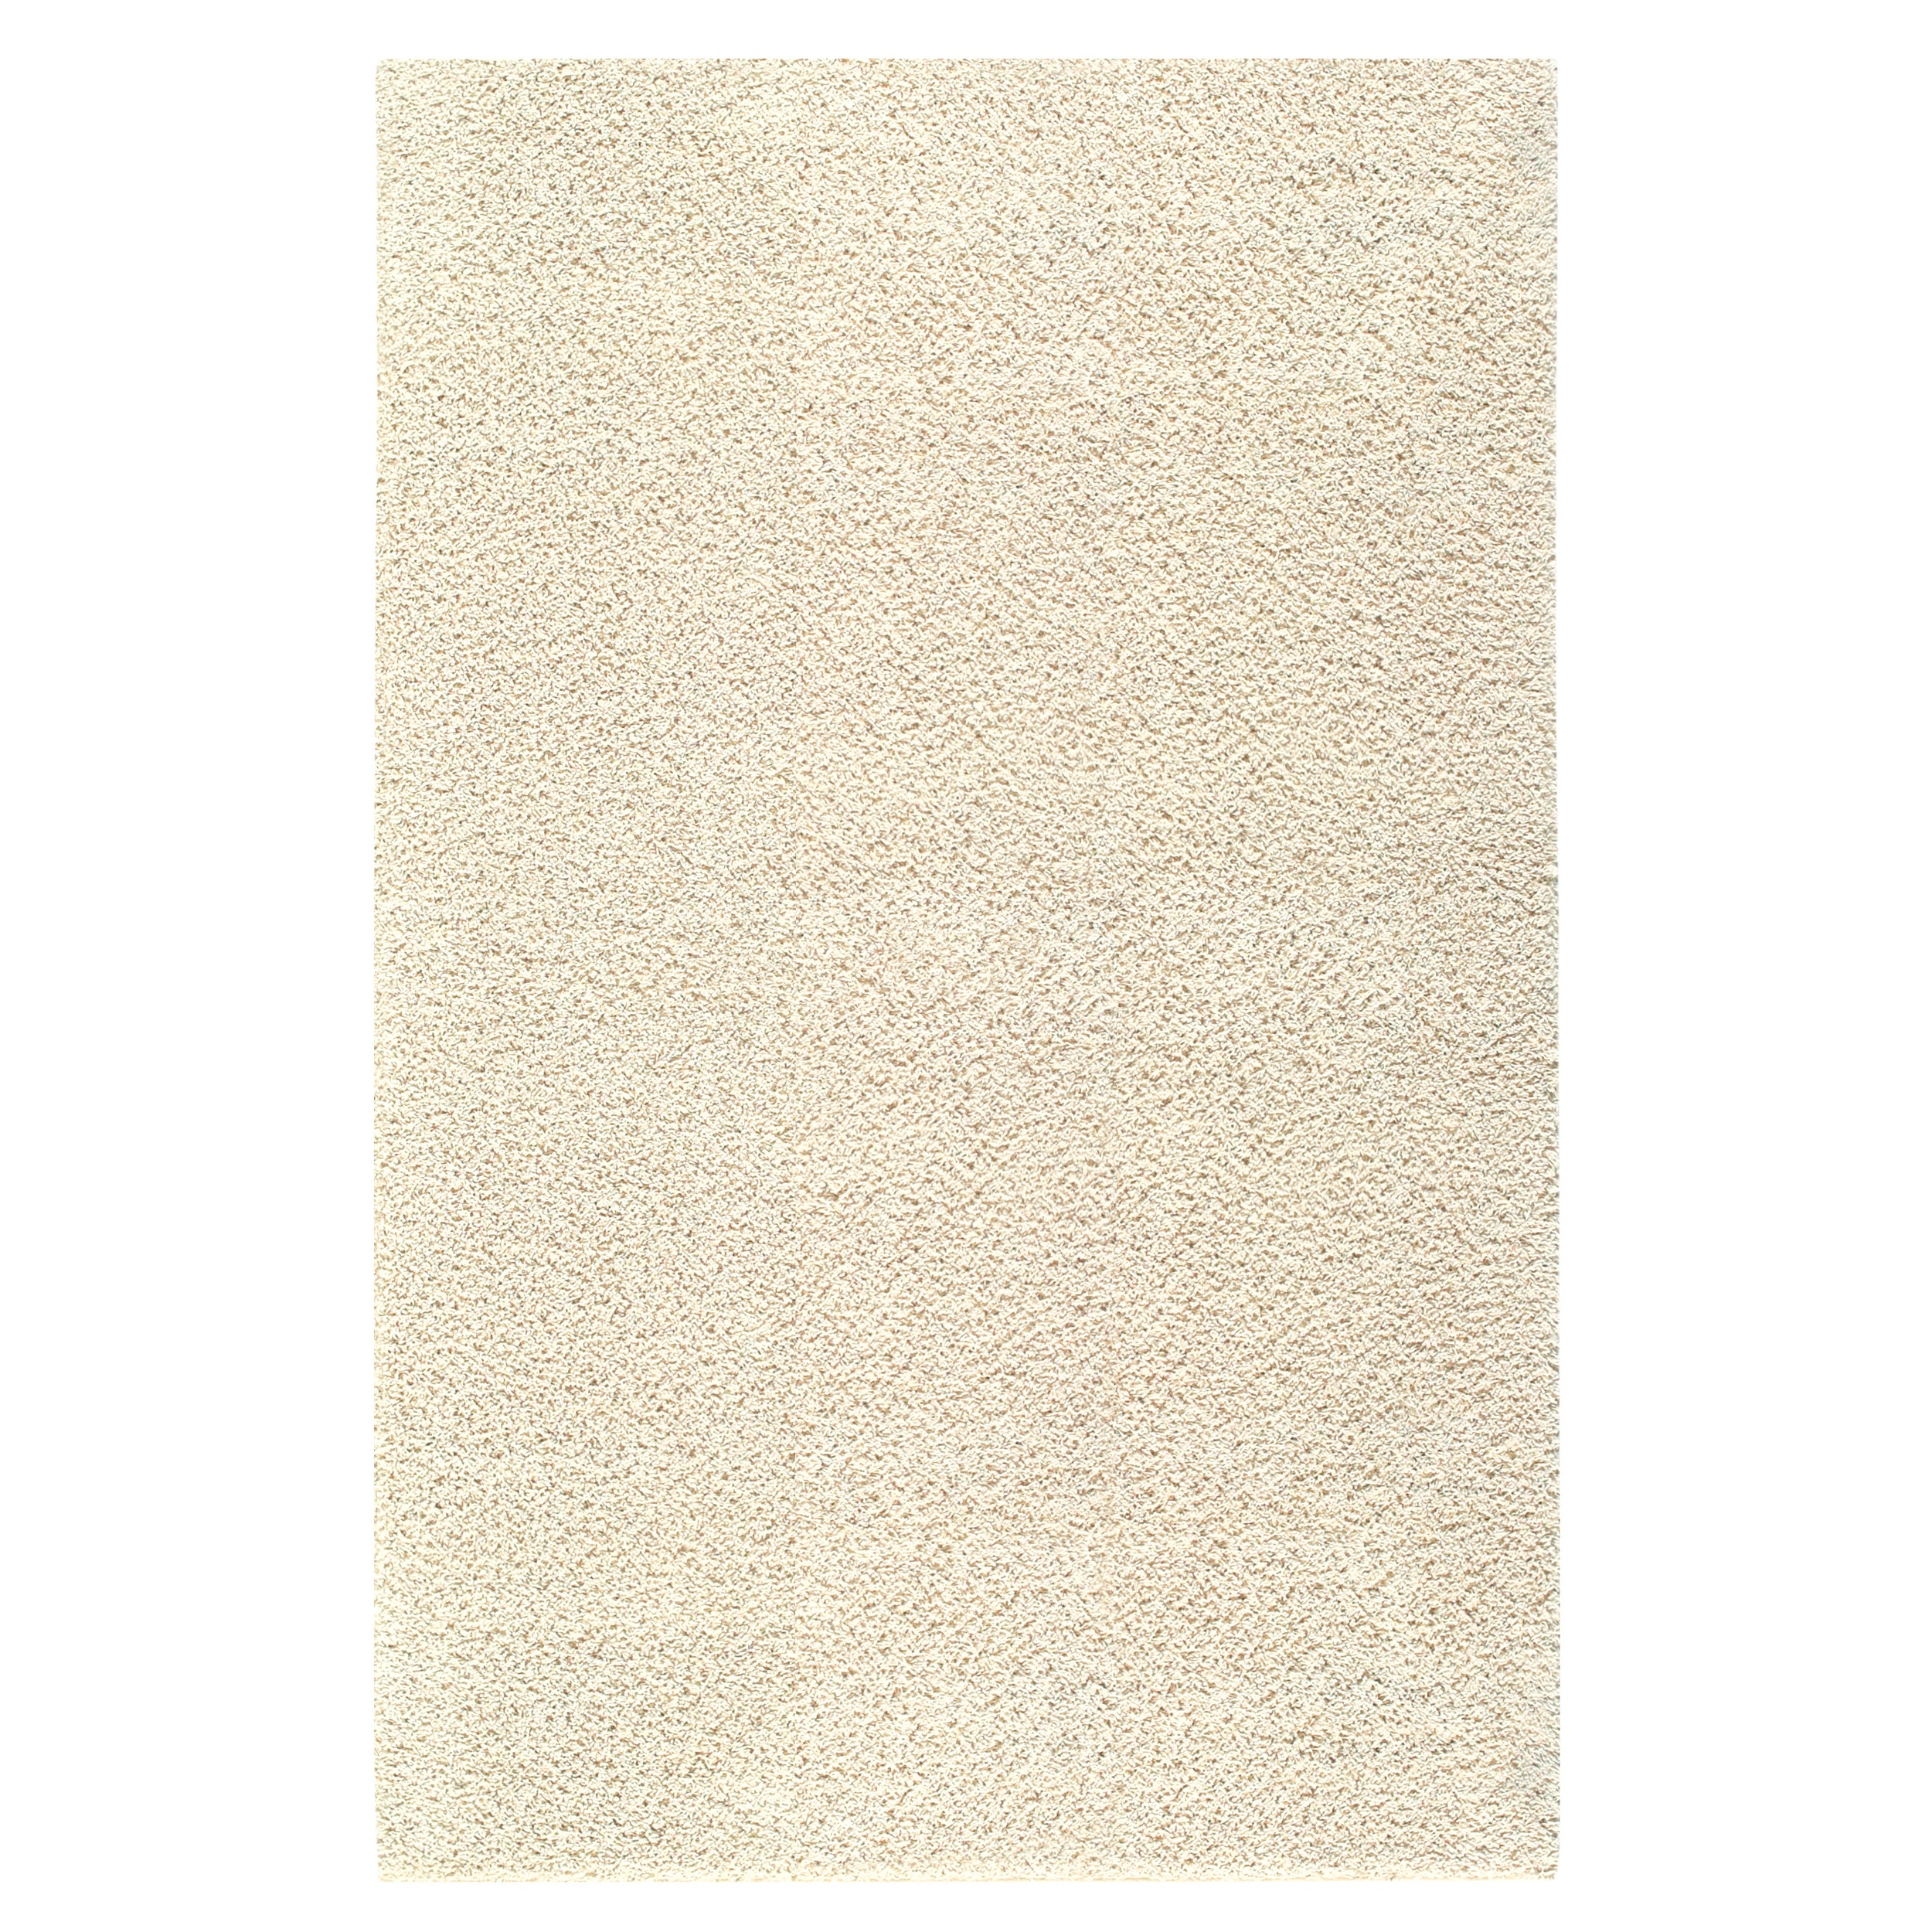 Solid Shag Starch Beige Rug (5' x 8') - Thumbnail 0